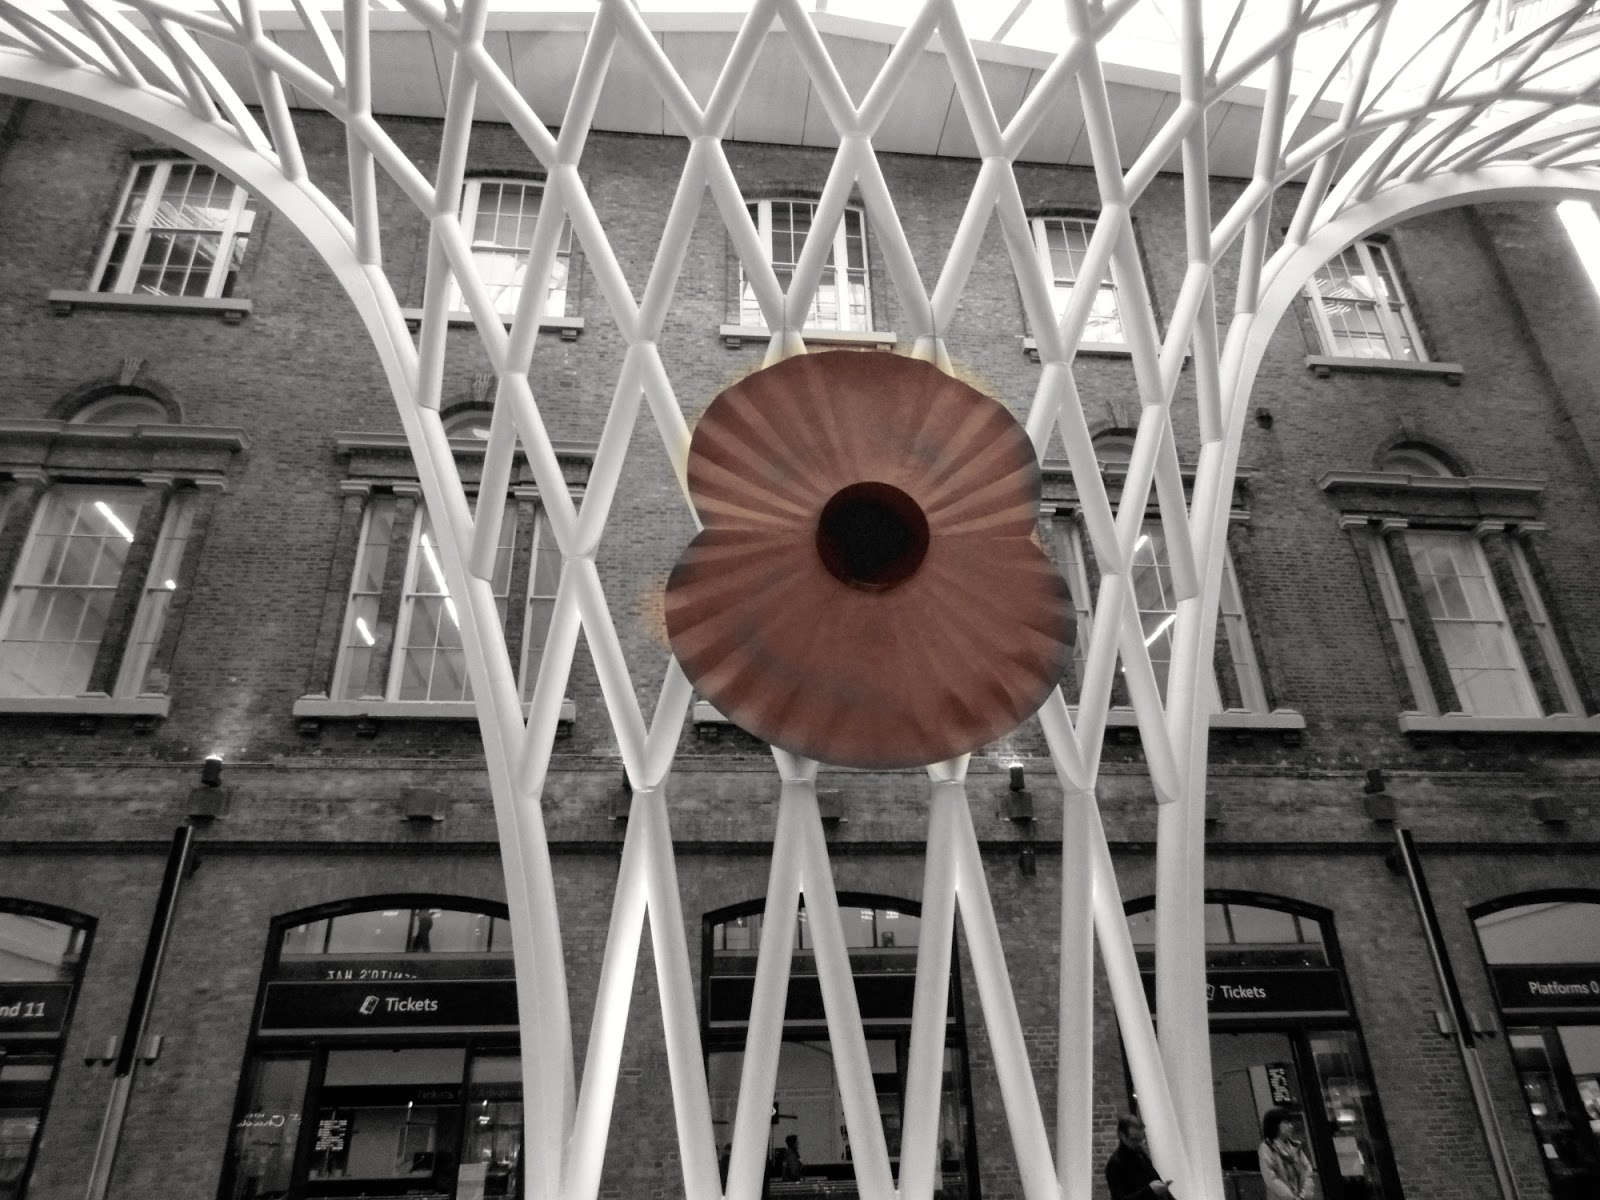 giant poppy at Kings Cross Station, London Remembrance Sunday